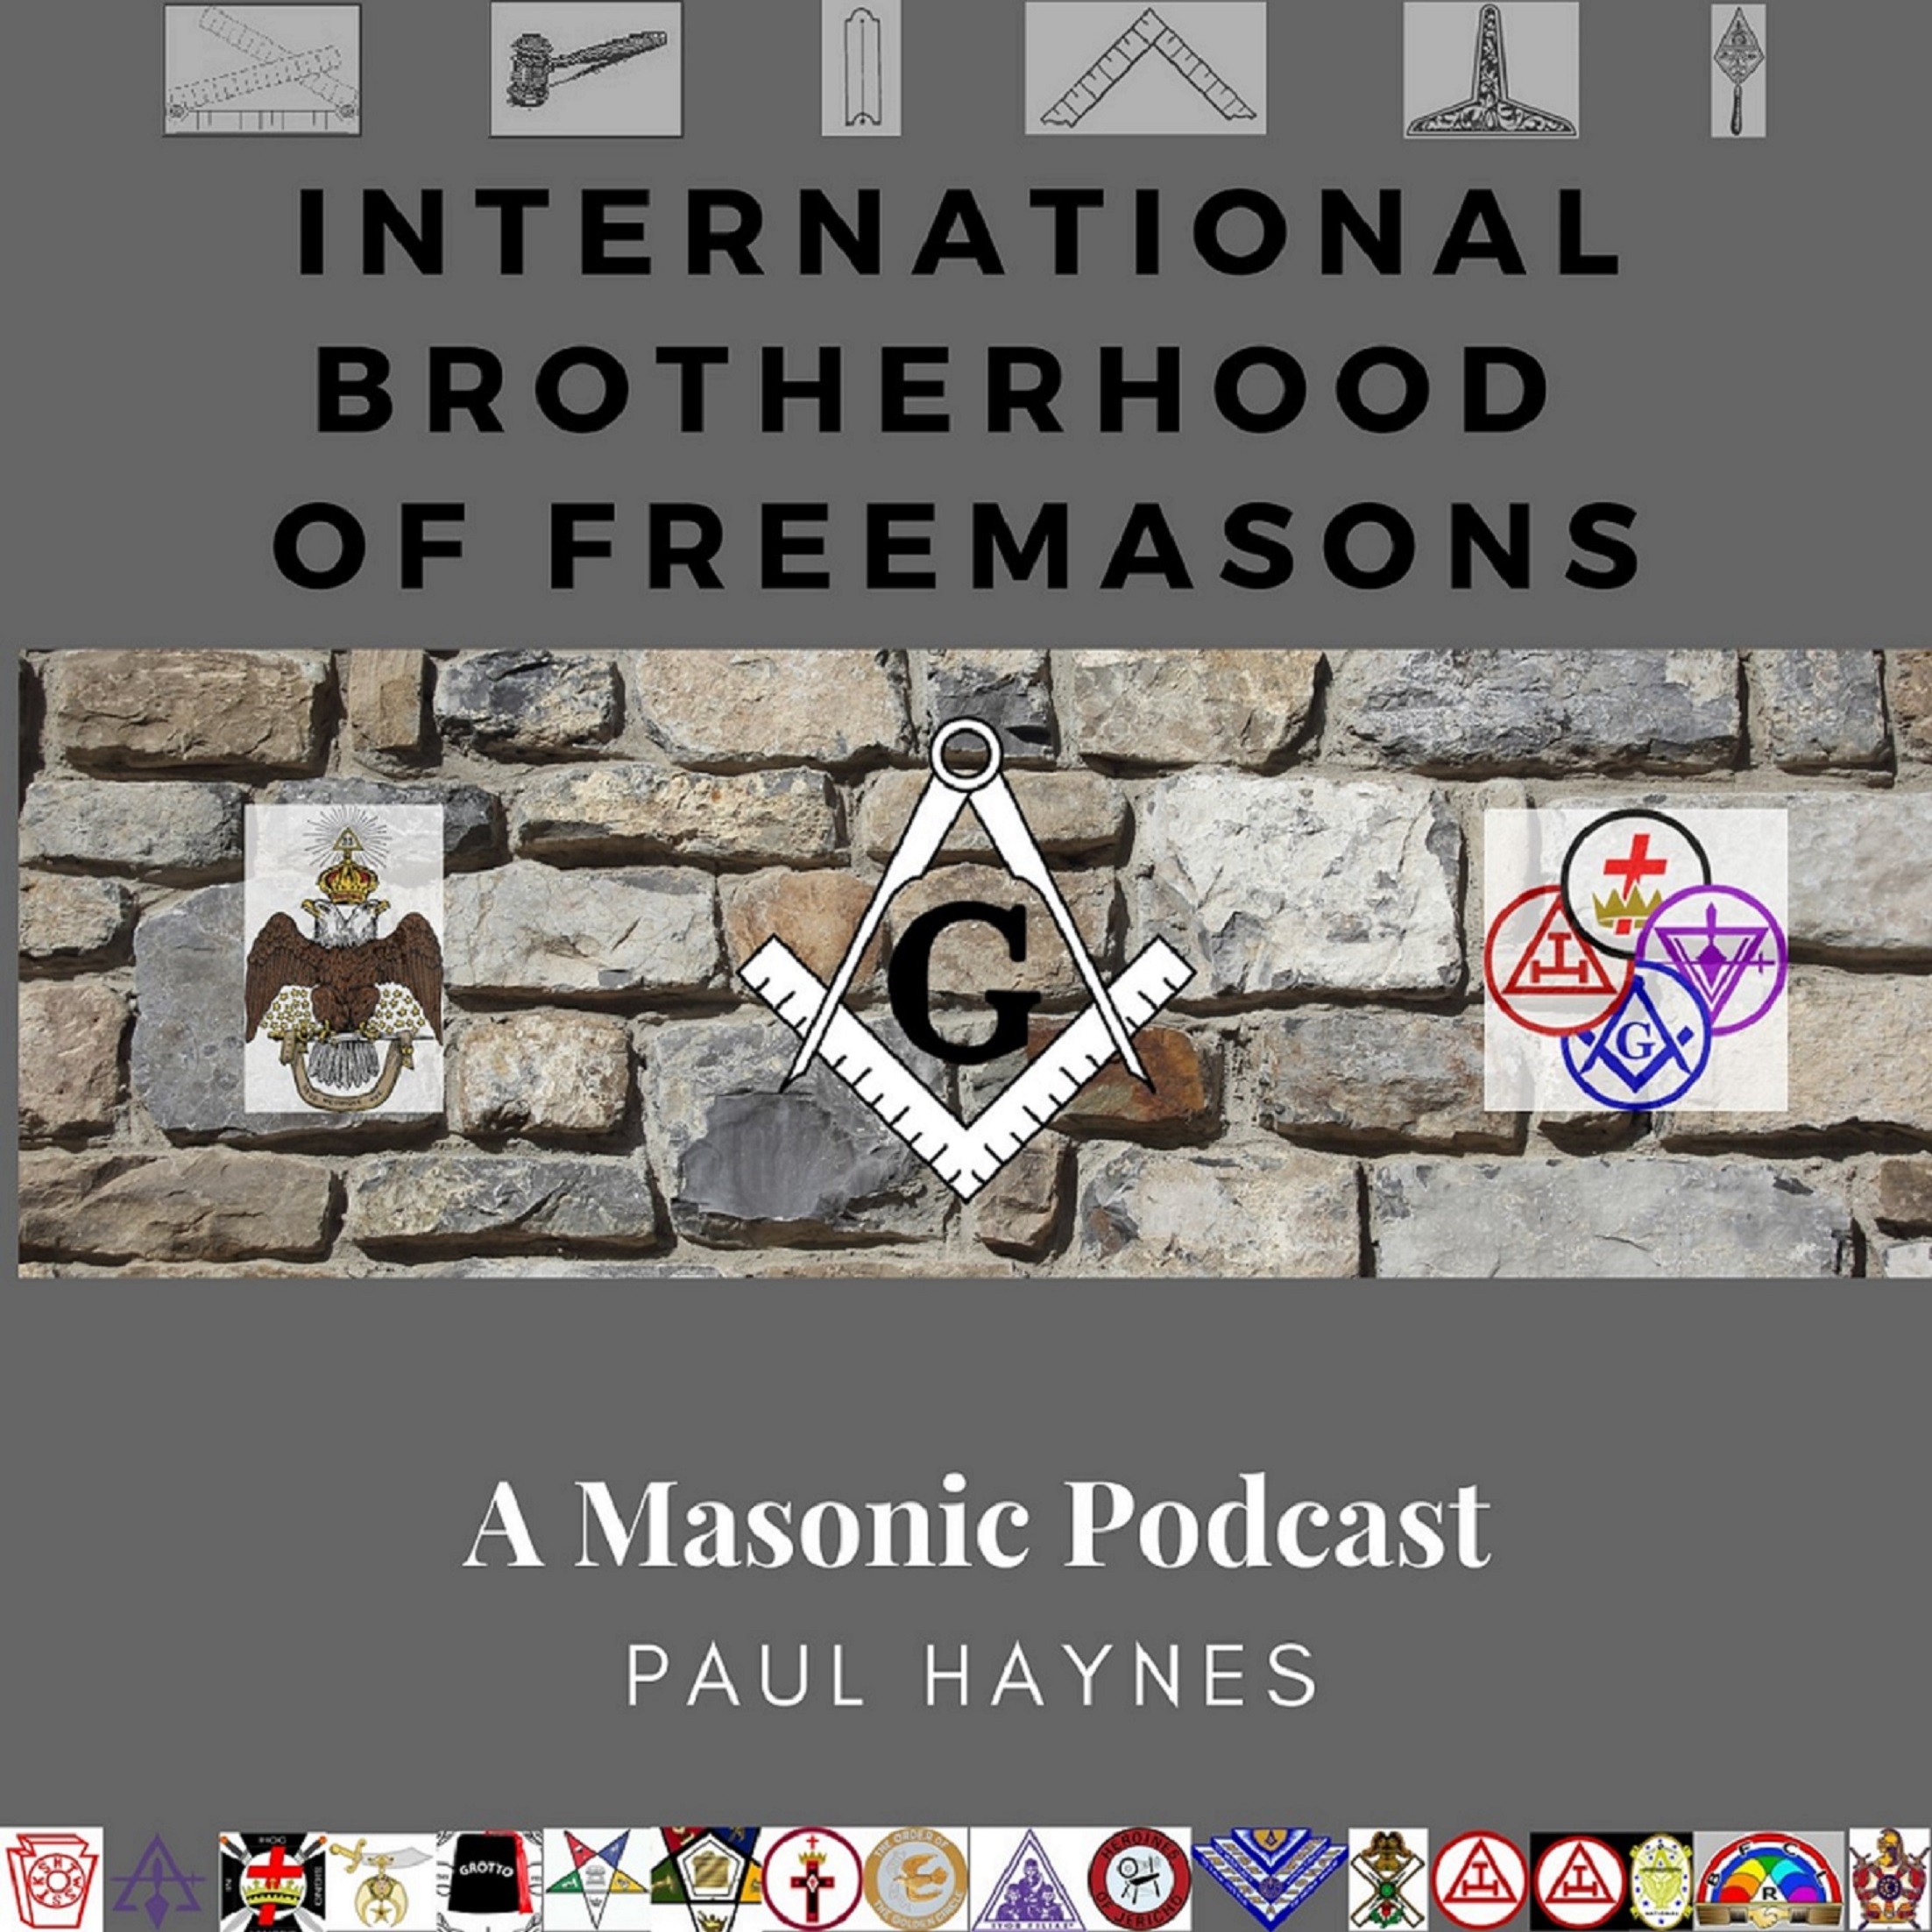 International Brotherhood of Freemasons